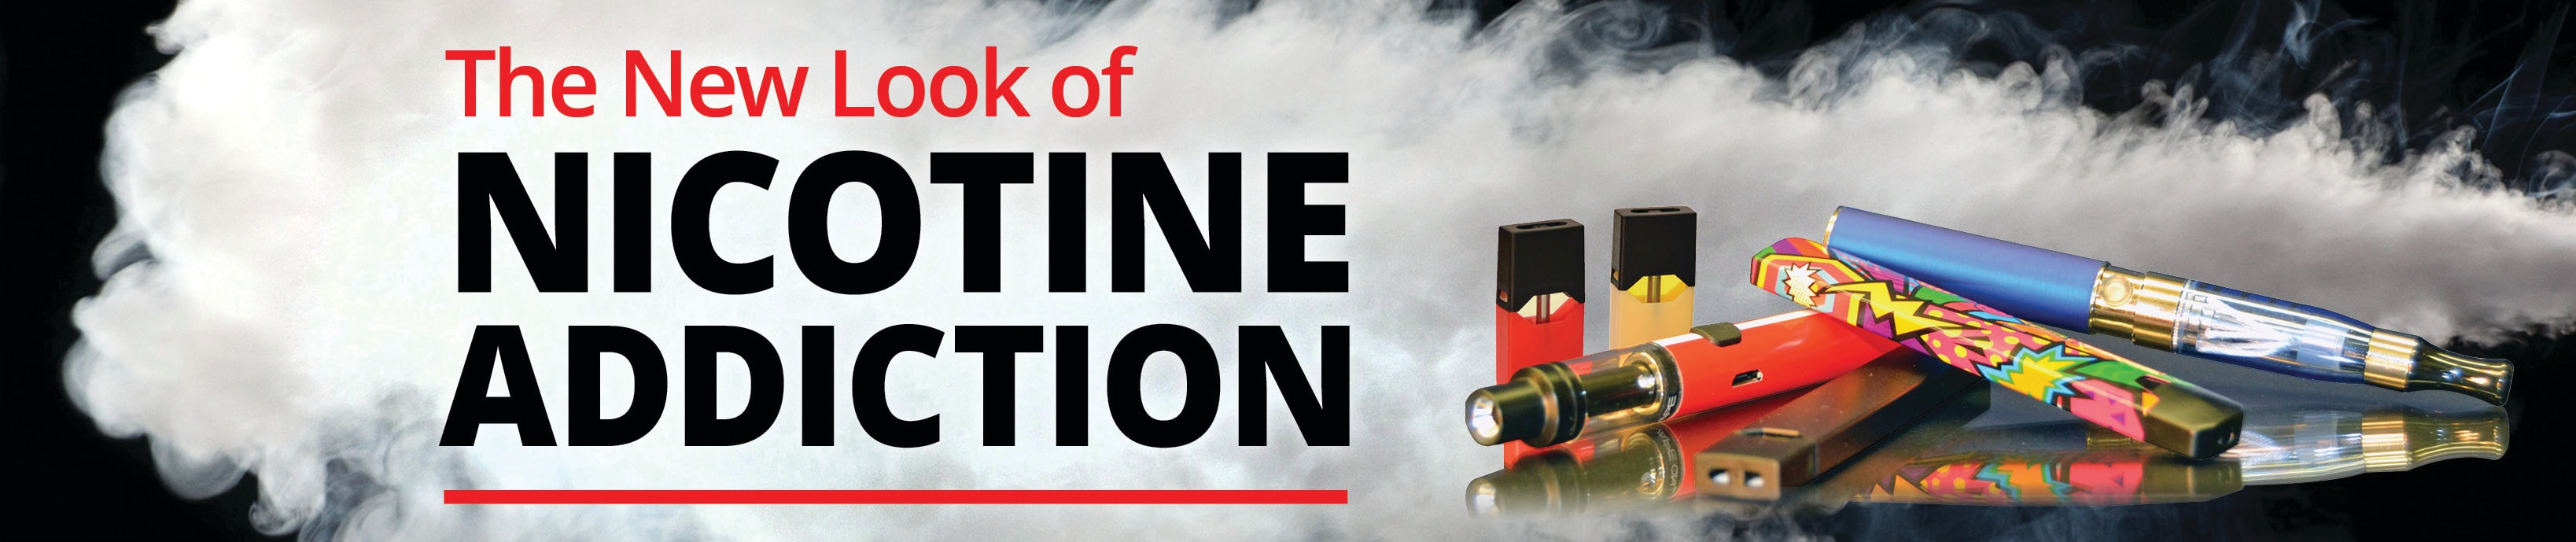 """The new look of nicotine addition"" with e-cigarettes."